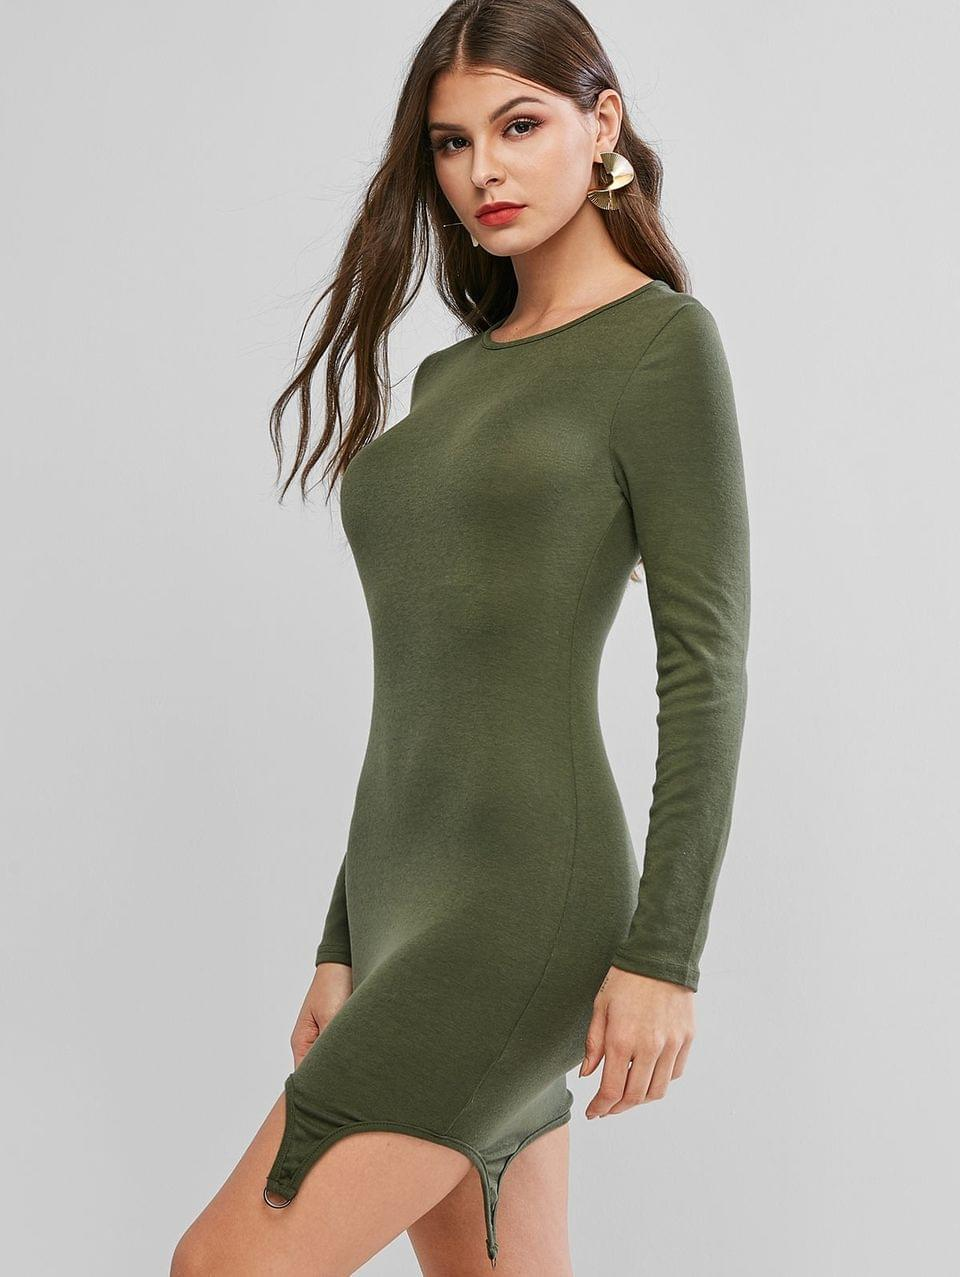 Women's D Ring Long Sleeve Asymmetrical Bodycon Dress - Green L